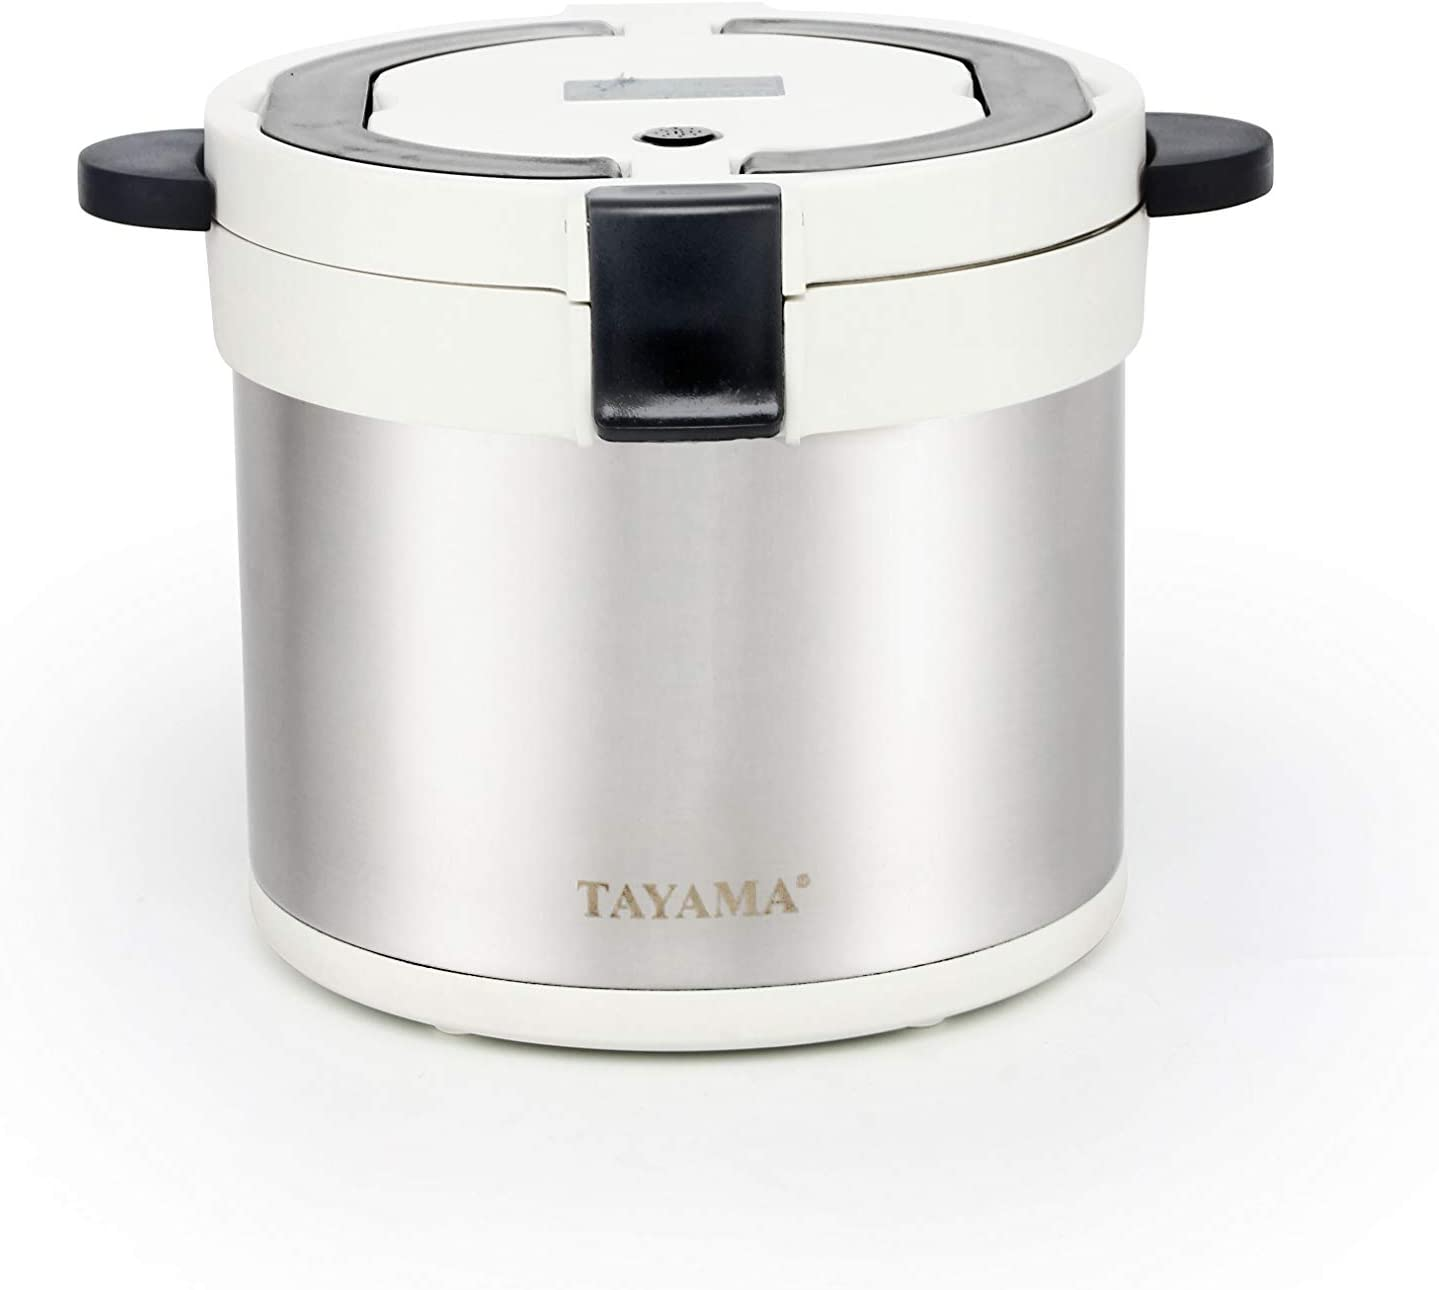 Tayama therma TXM-70XL Energy-Saving Thermal Cooker 7-Qt, White